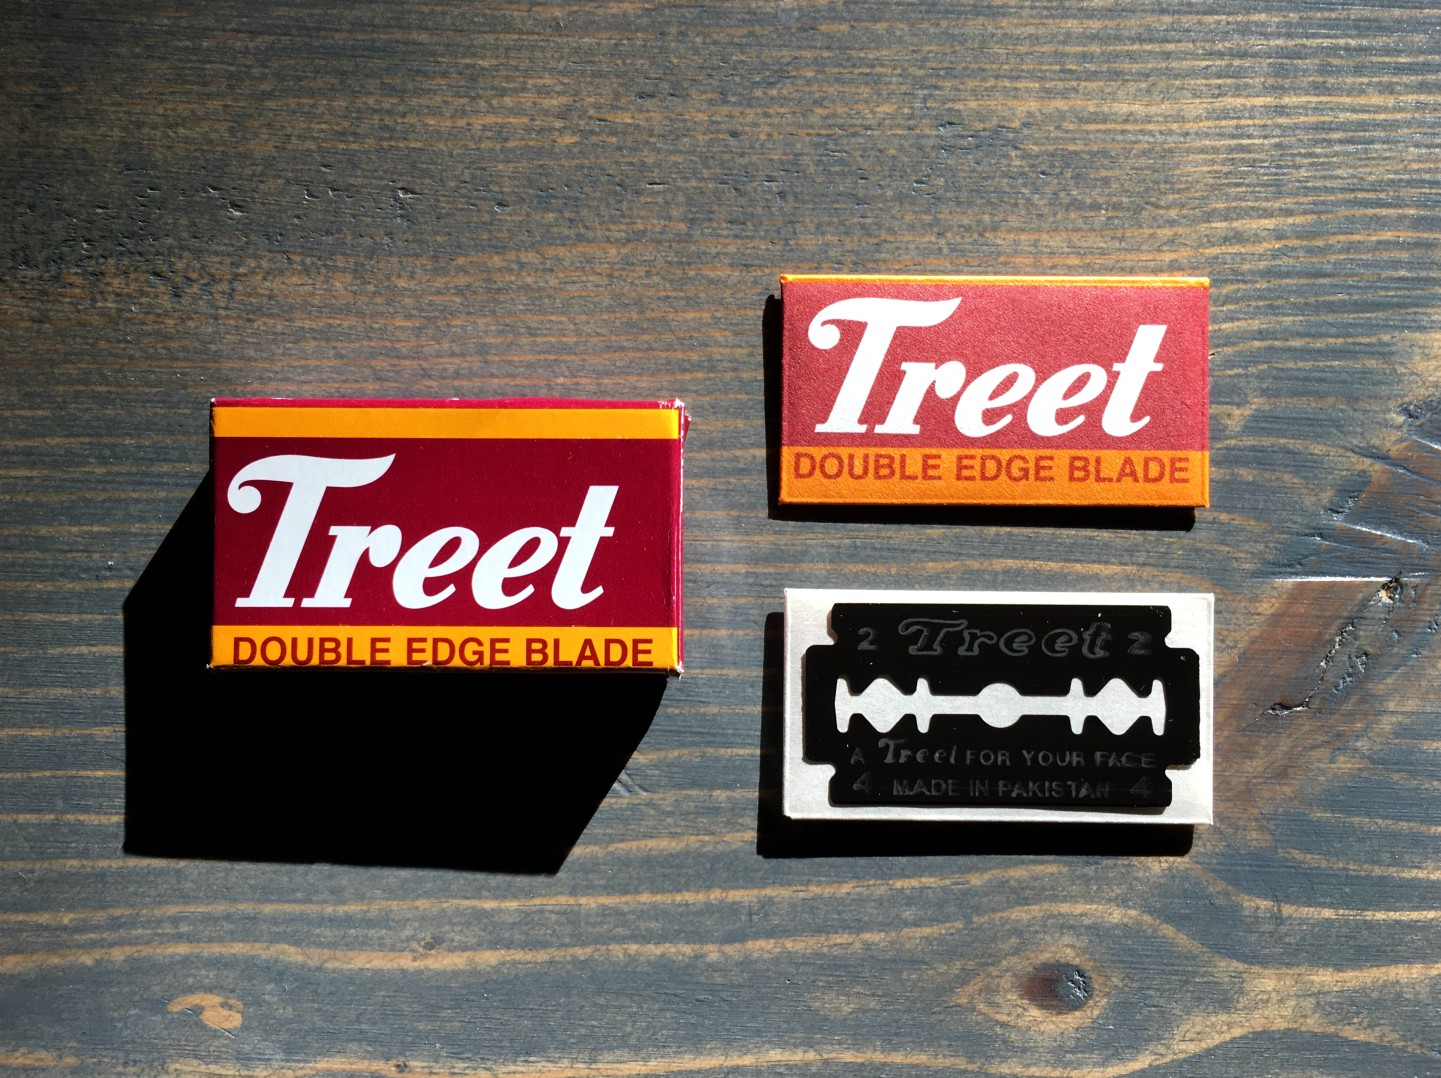 Treet Black Beauty Razor Blade Review